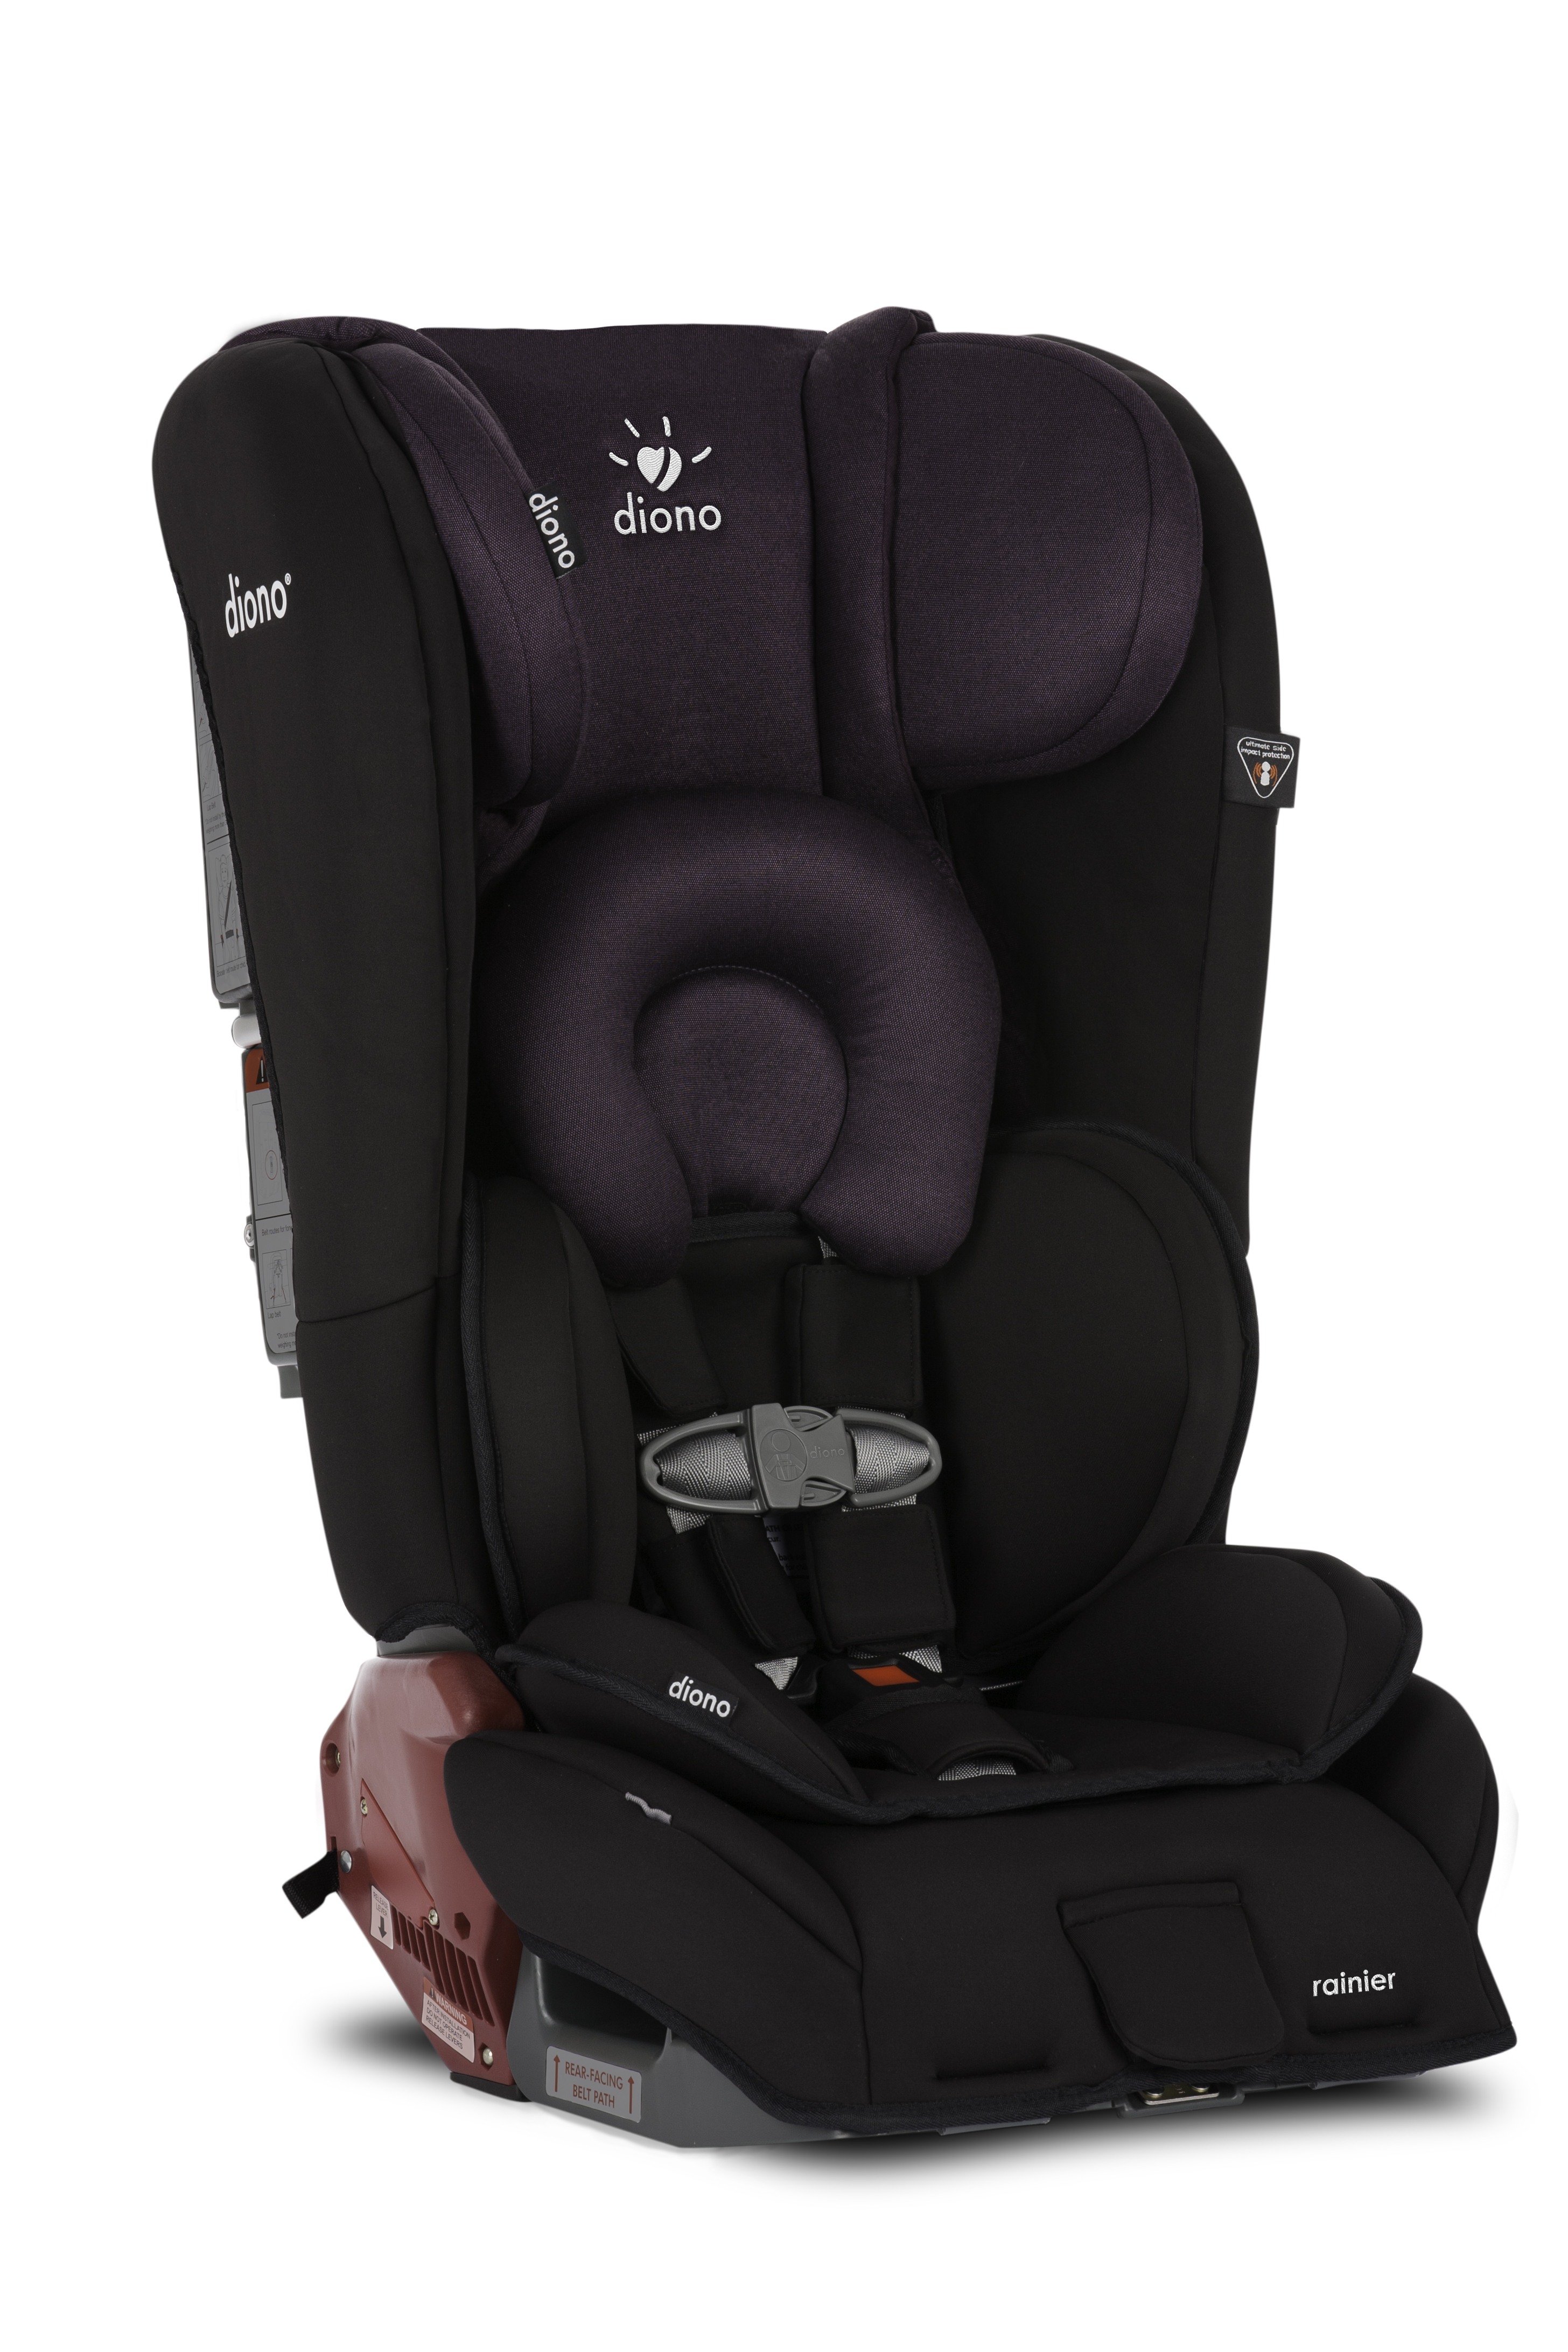 Diono Rainier All-in-One Car Seat, Midnight by Diono